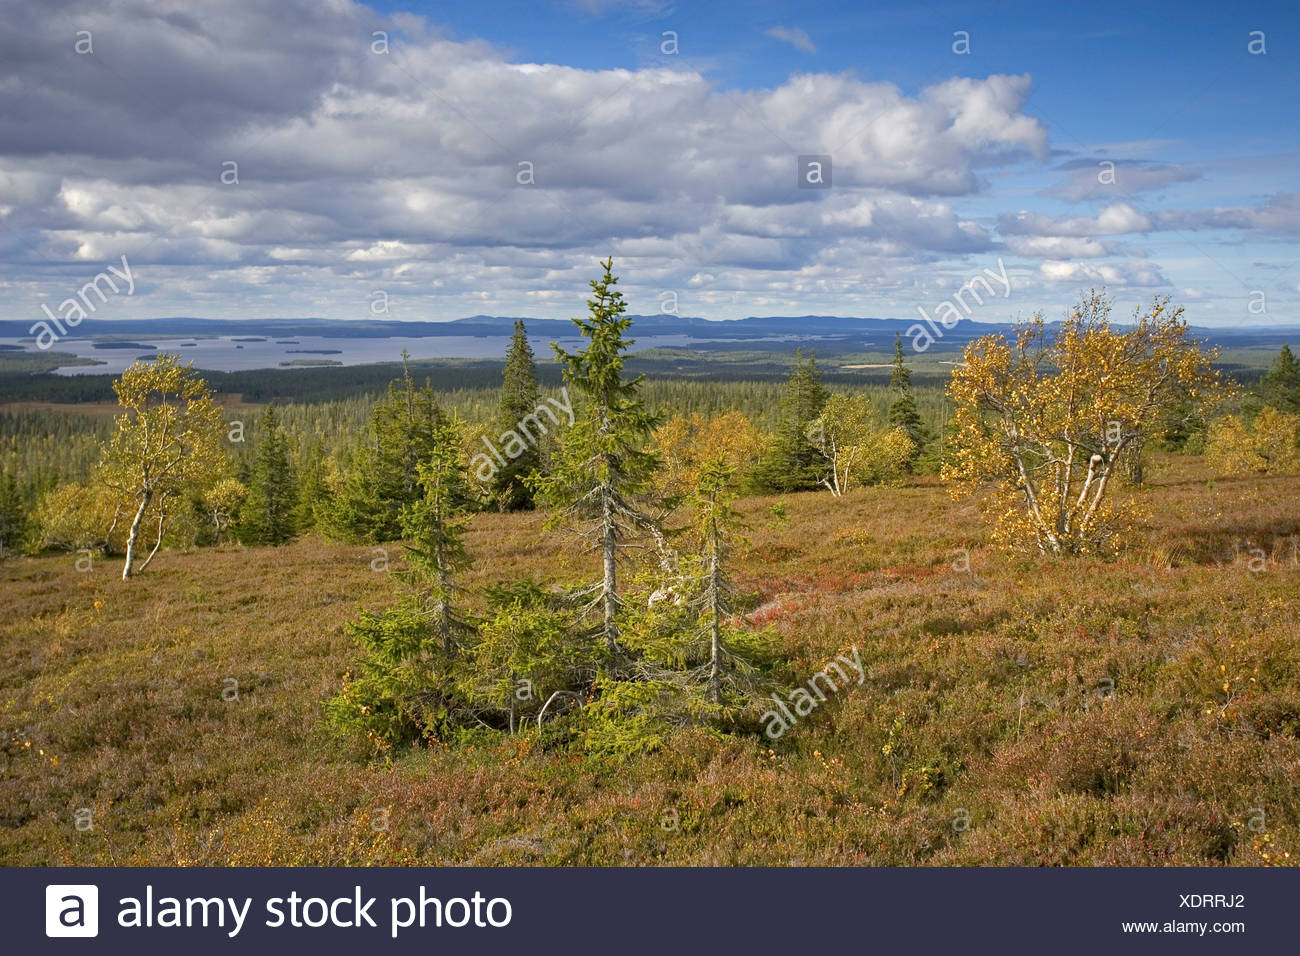 Riisitunturi National Park in autumn, Finland, Scandinavia, Europe - Stock Image